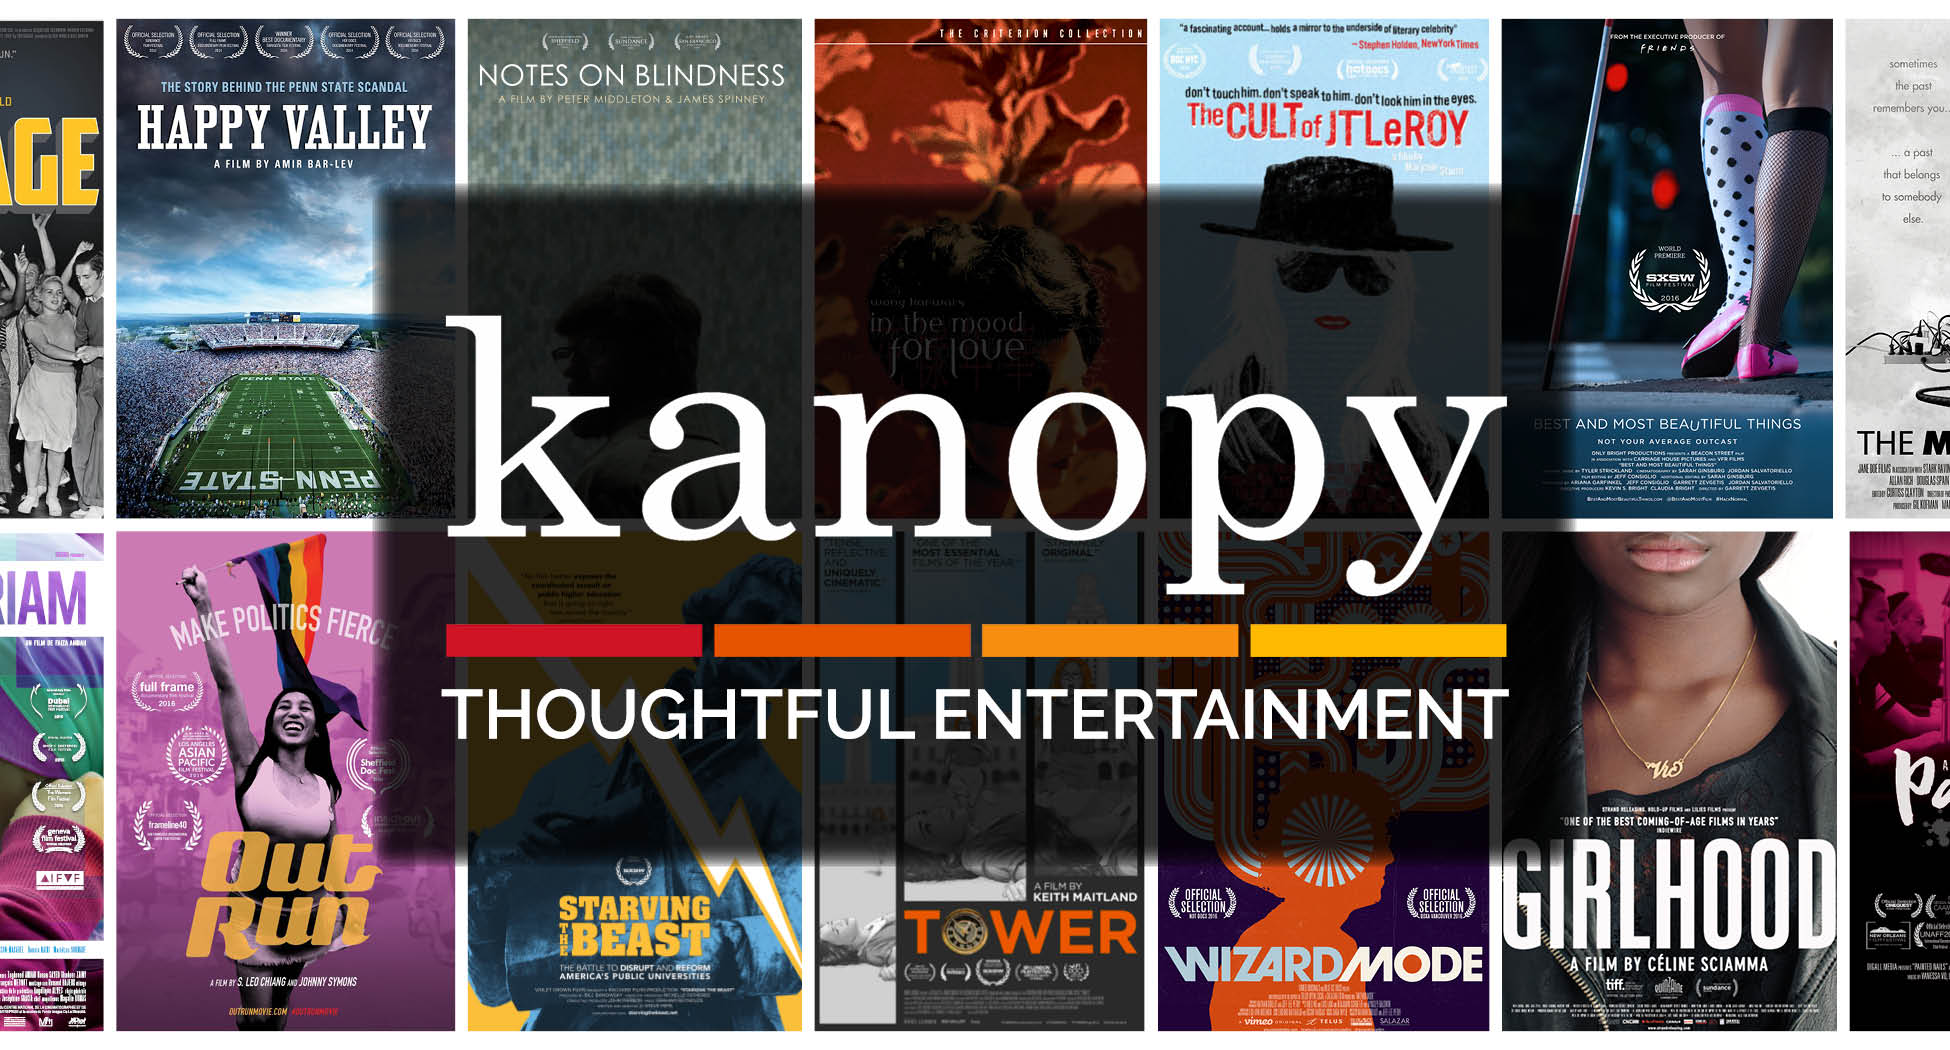 image of kanopy banner